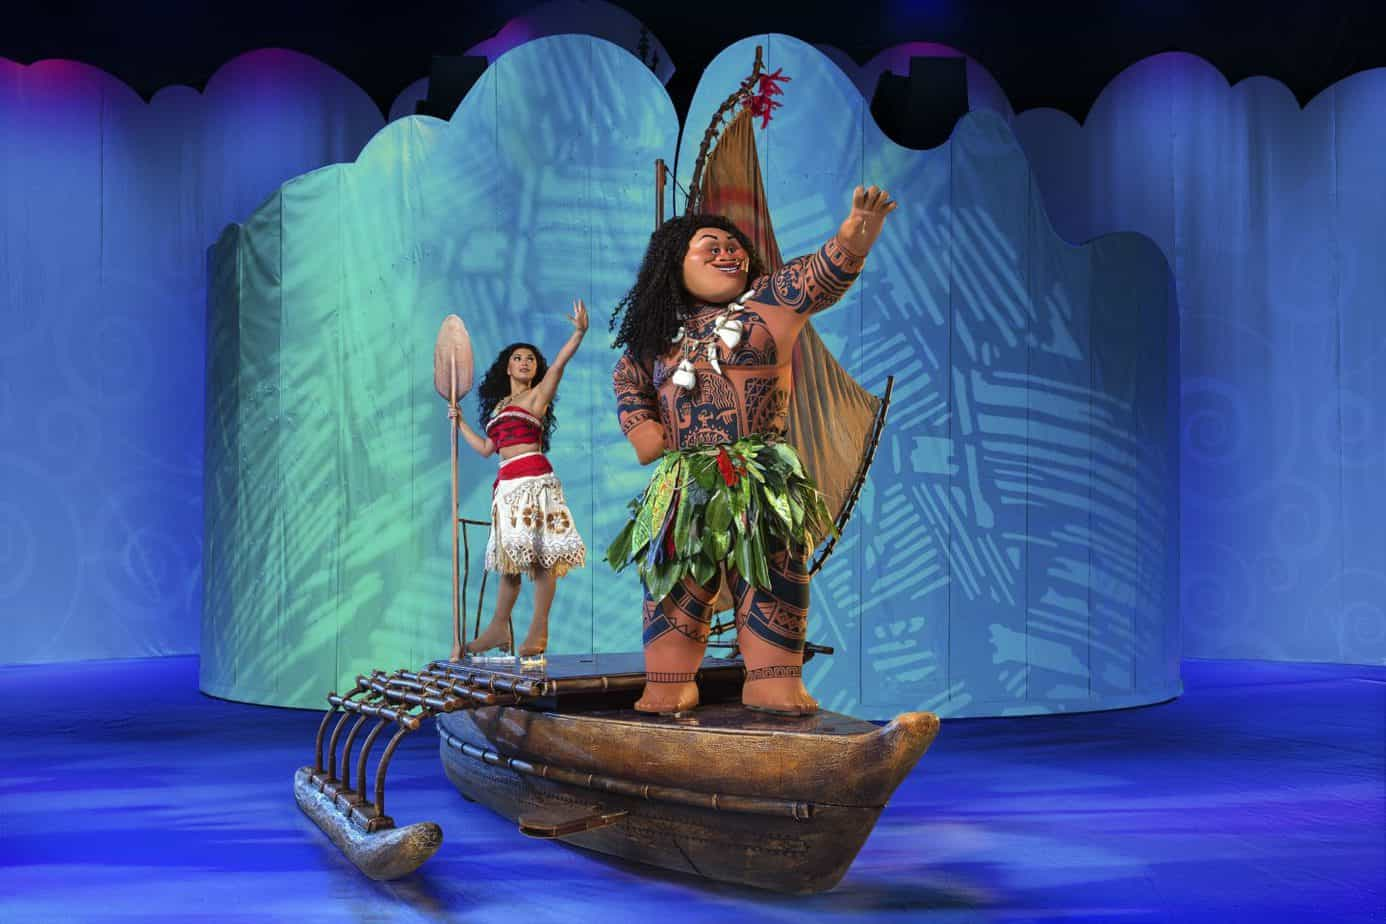 Moana and Maui on their boat on the ice